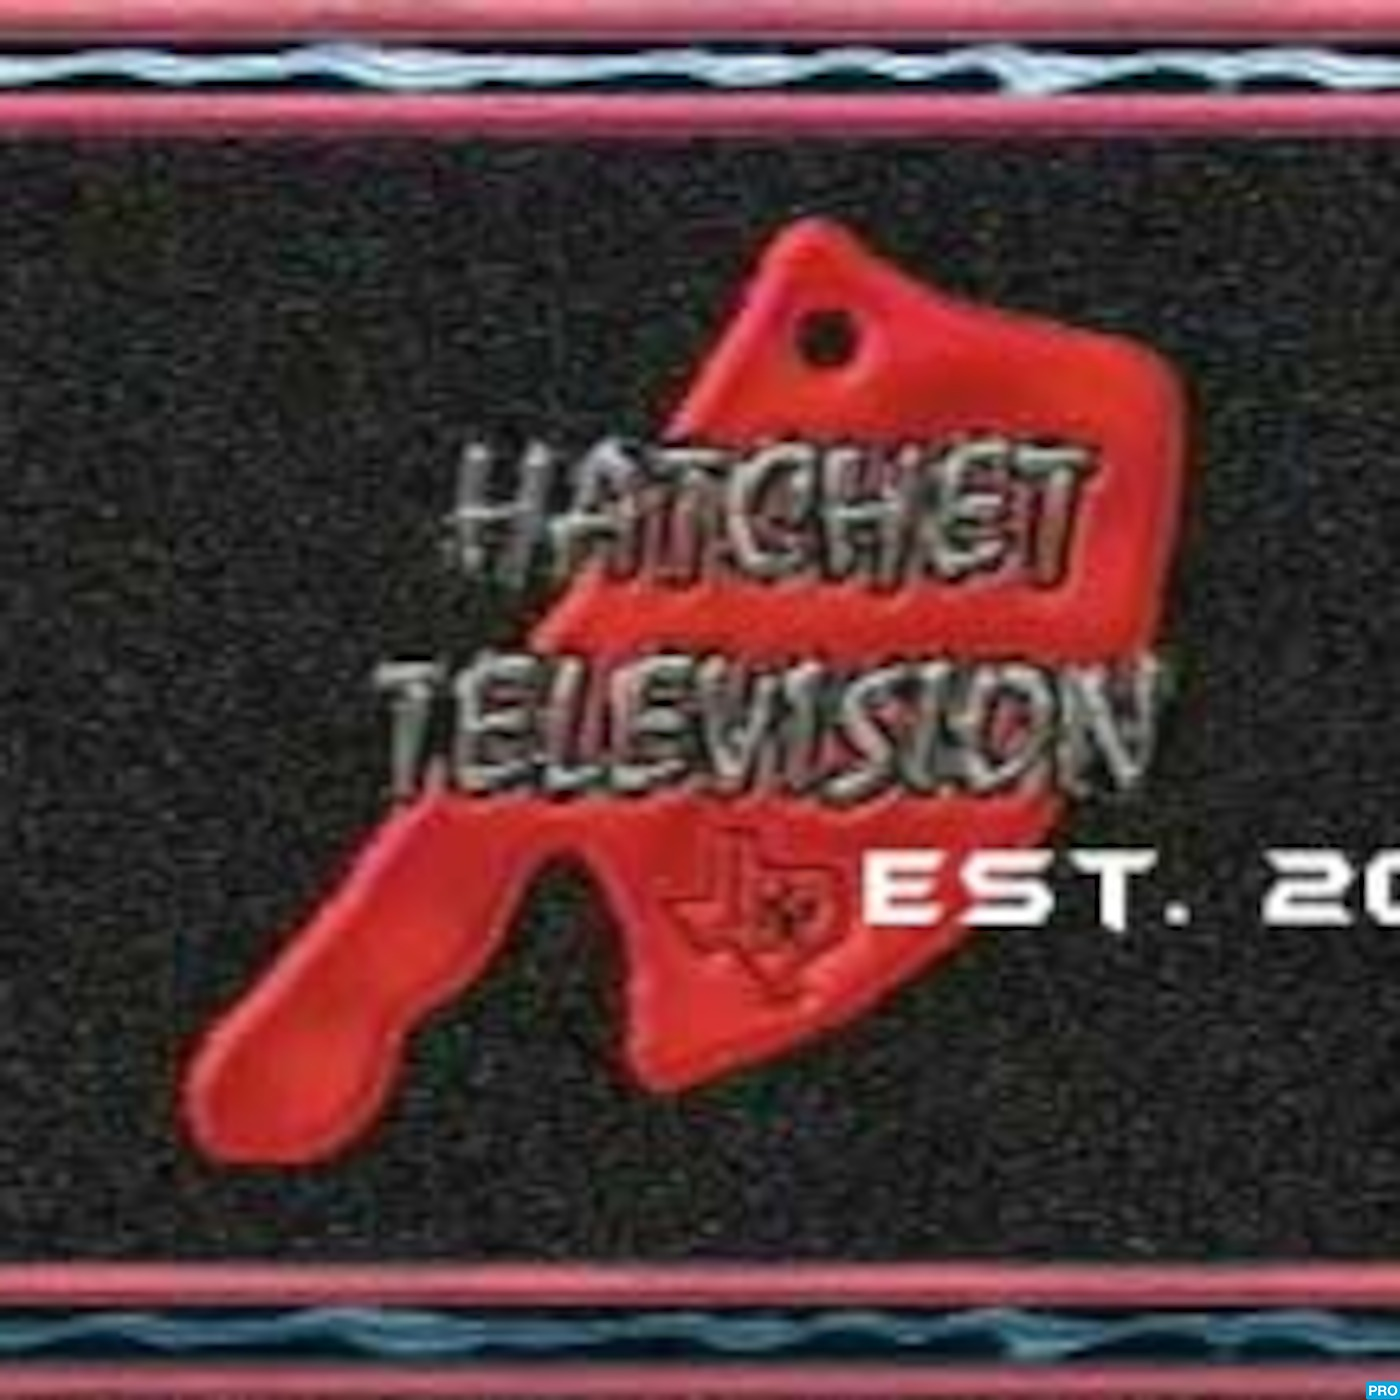 Hatchet TV's podcast